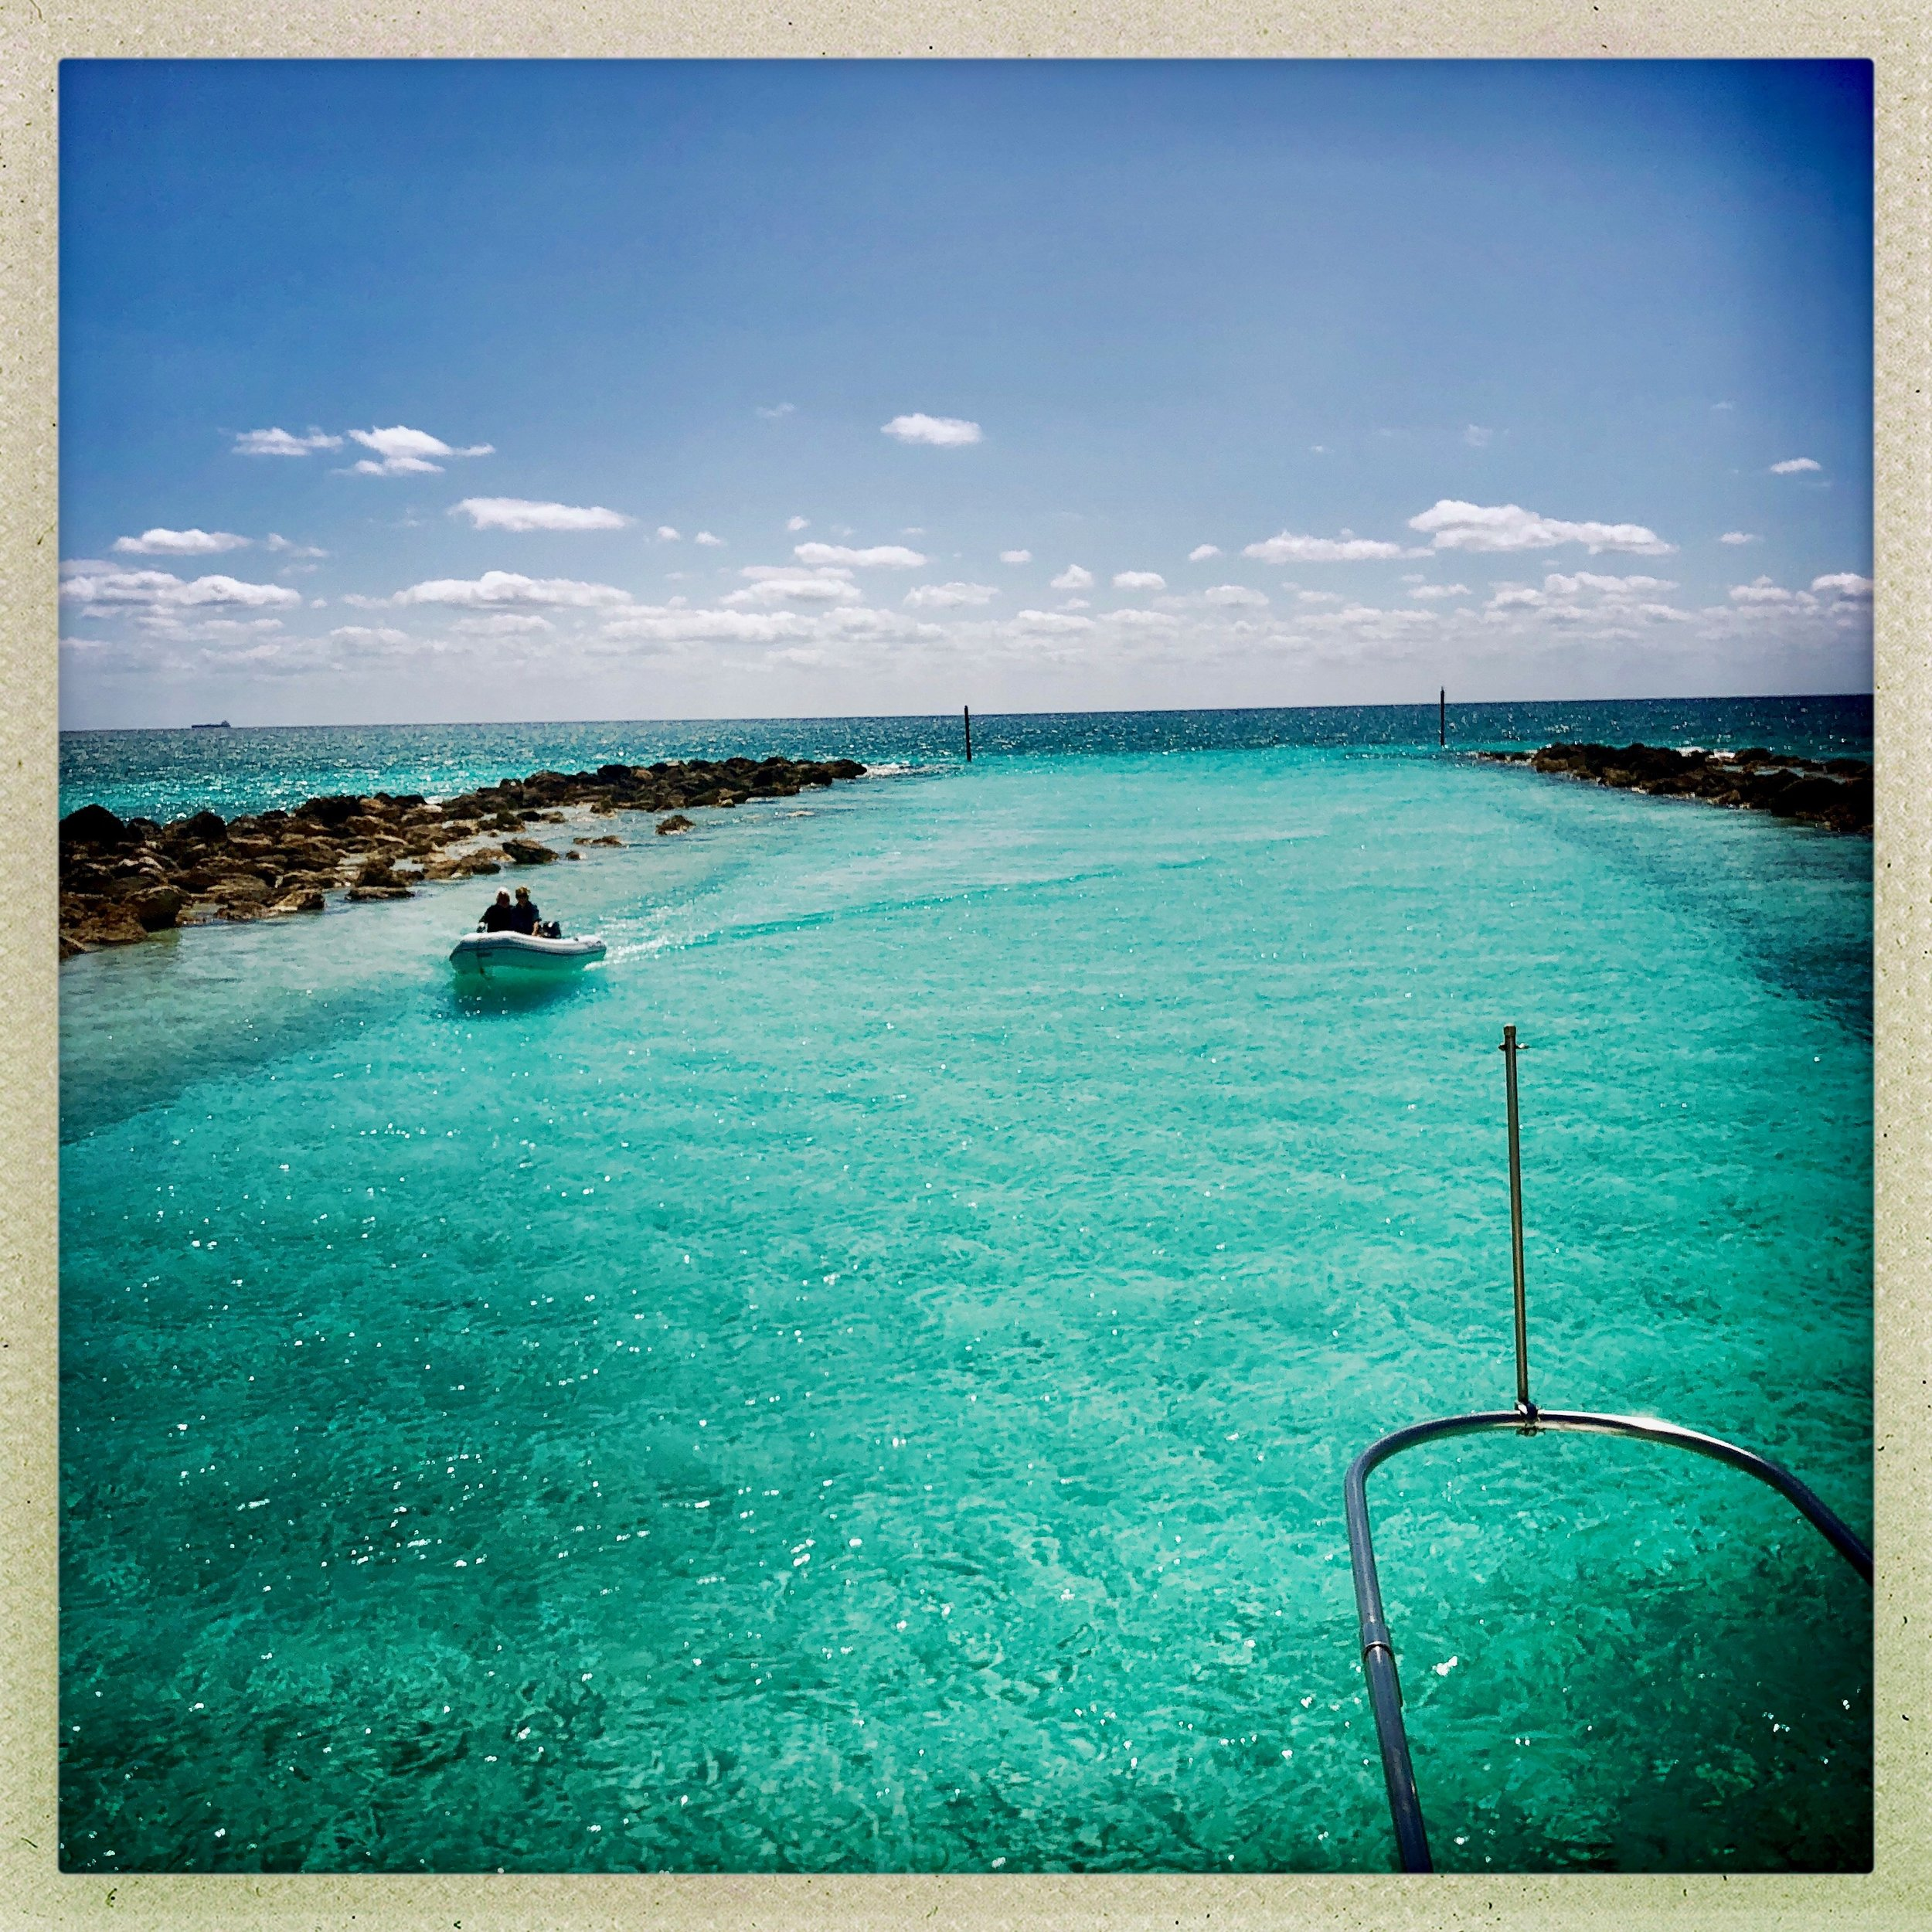 GRAND BAHAMA ISLAND GETAWAY - FREE Guide For Your Two-NIGHT STAY on Yacht SLAINTE